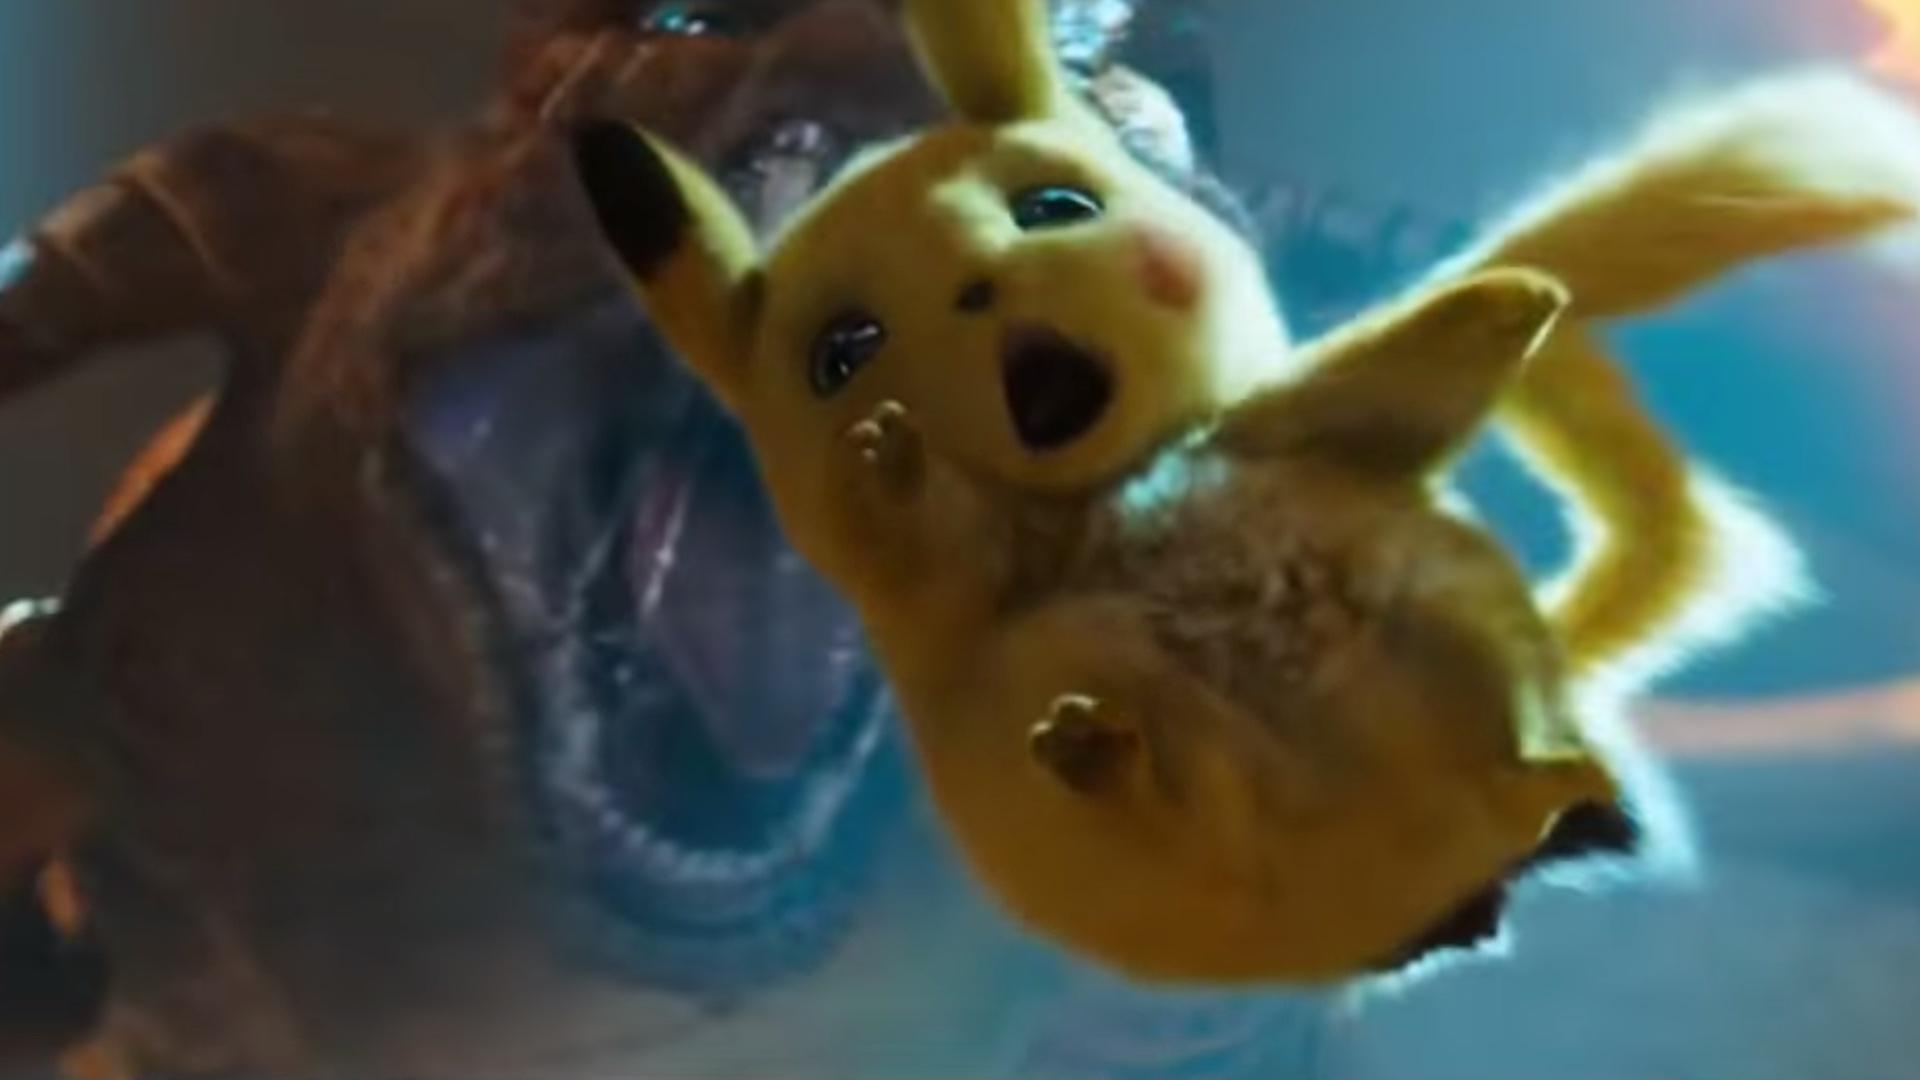 The DETECTIVE PIKACHU Trailer Has Been Fantastically Re